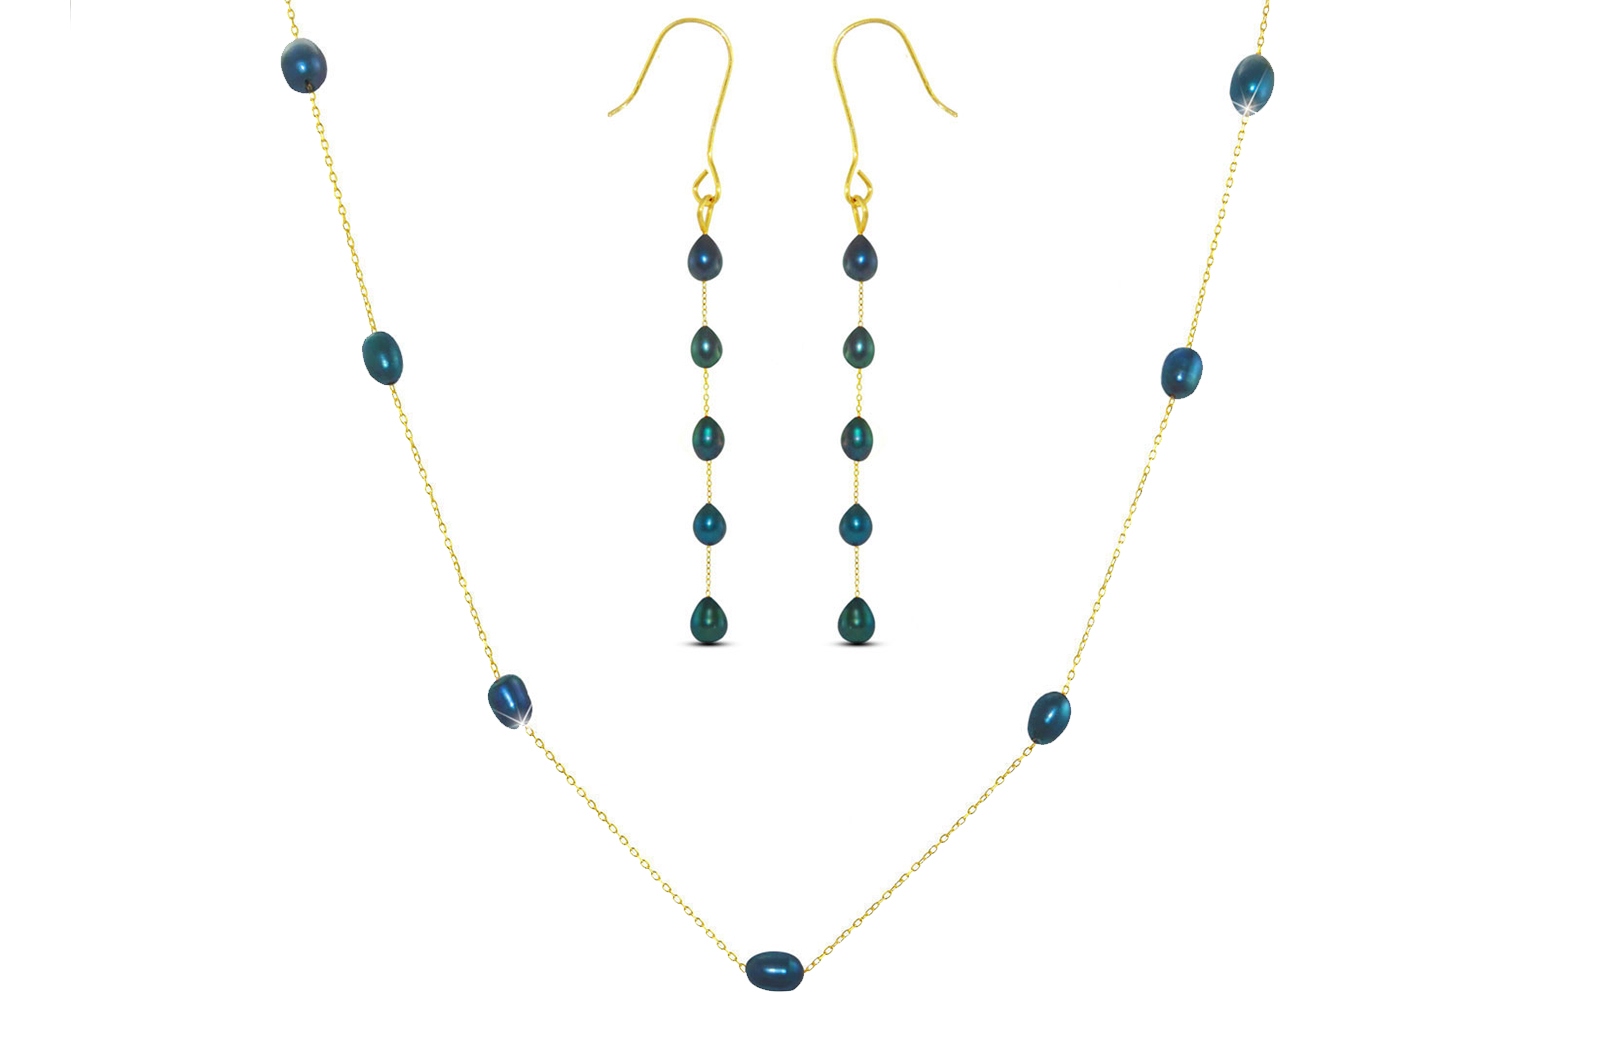 Vera Perla 10K Gold Black  Pearls Jewelry Set - 2 pcs.